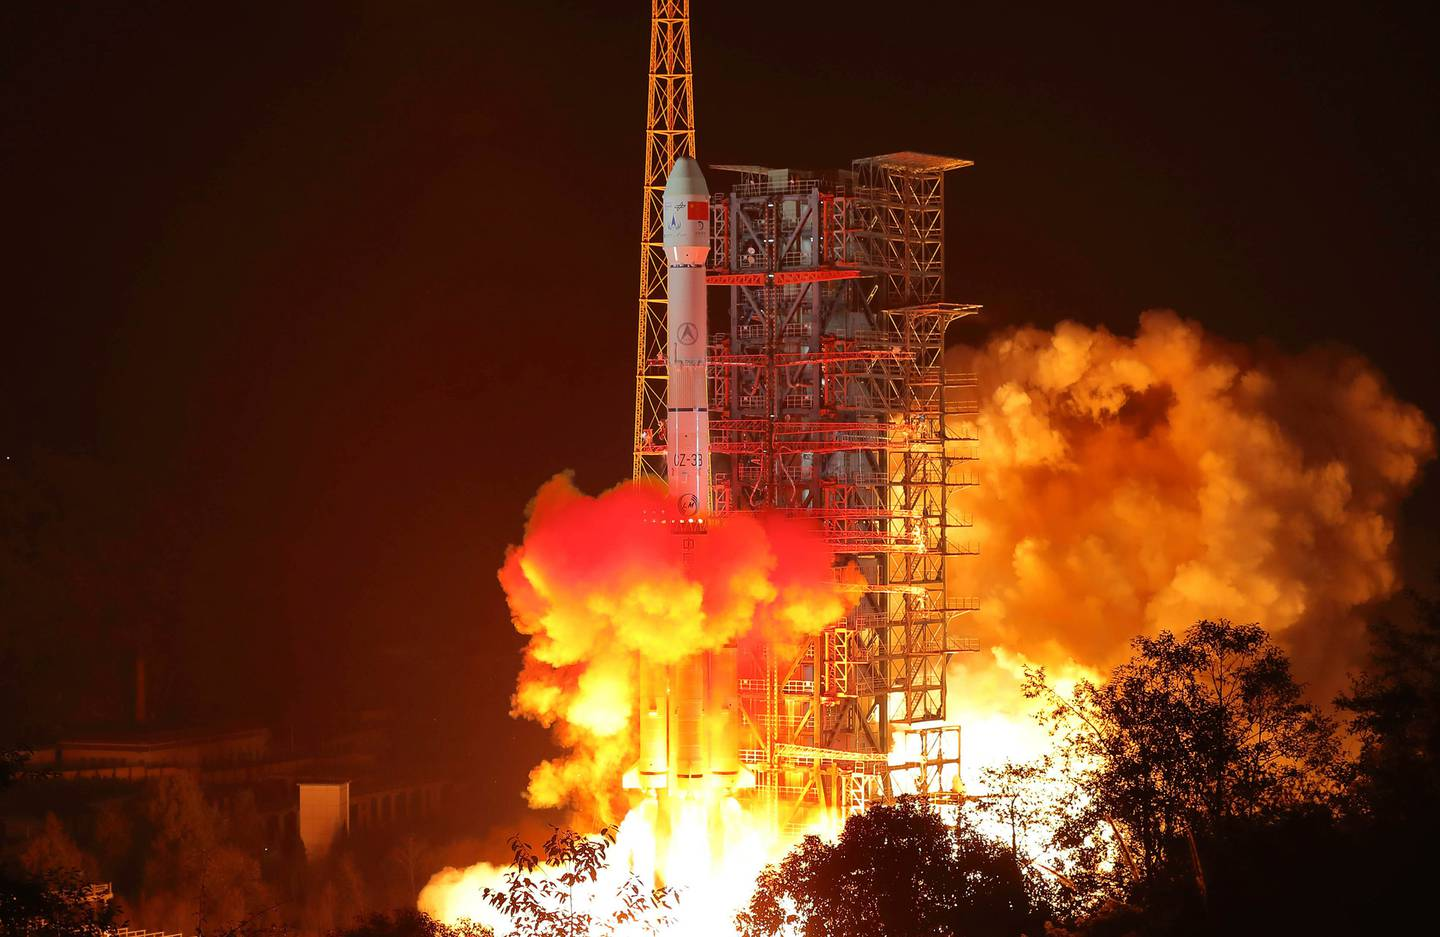 The Chang'e 4 lunar probe launches from the the Xichang Satellite Launch Center in 2018. Photo / AP